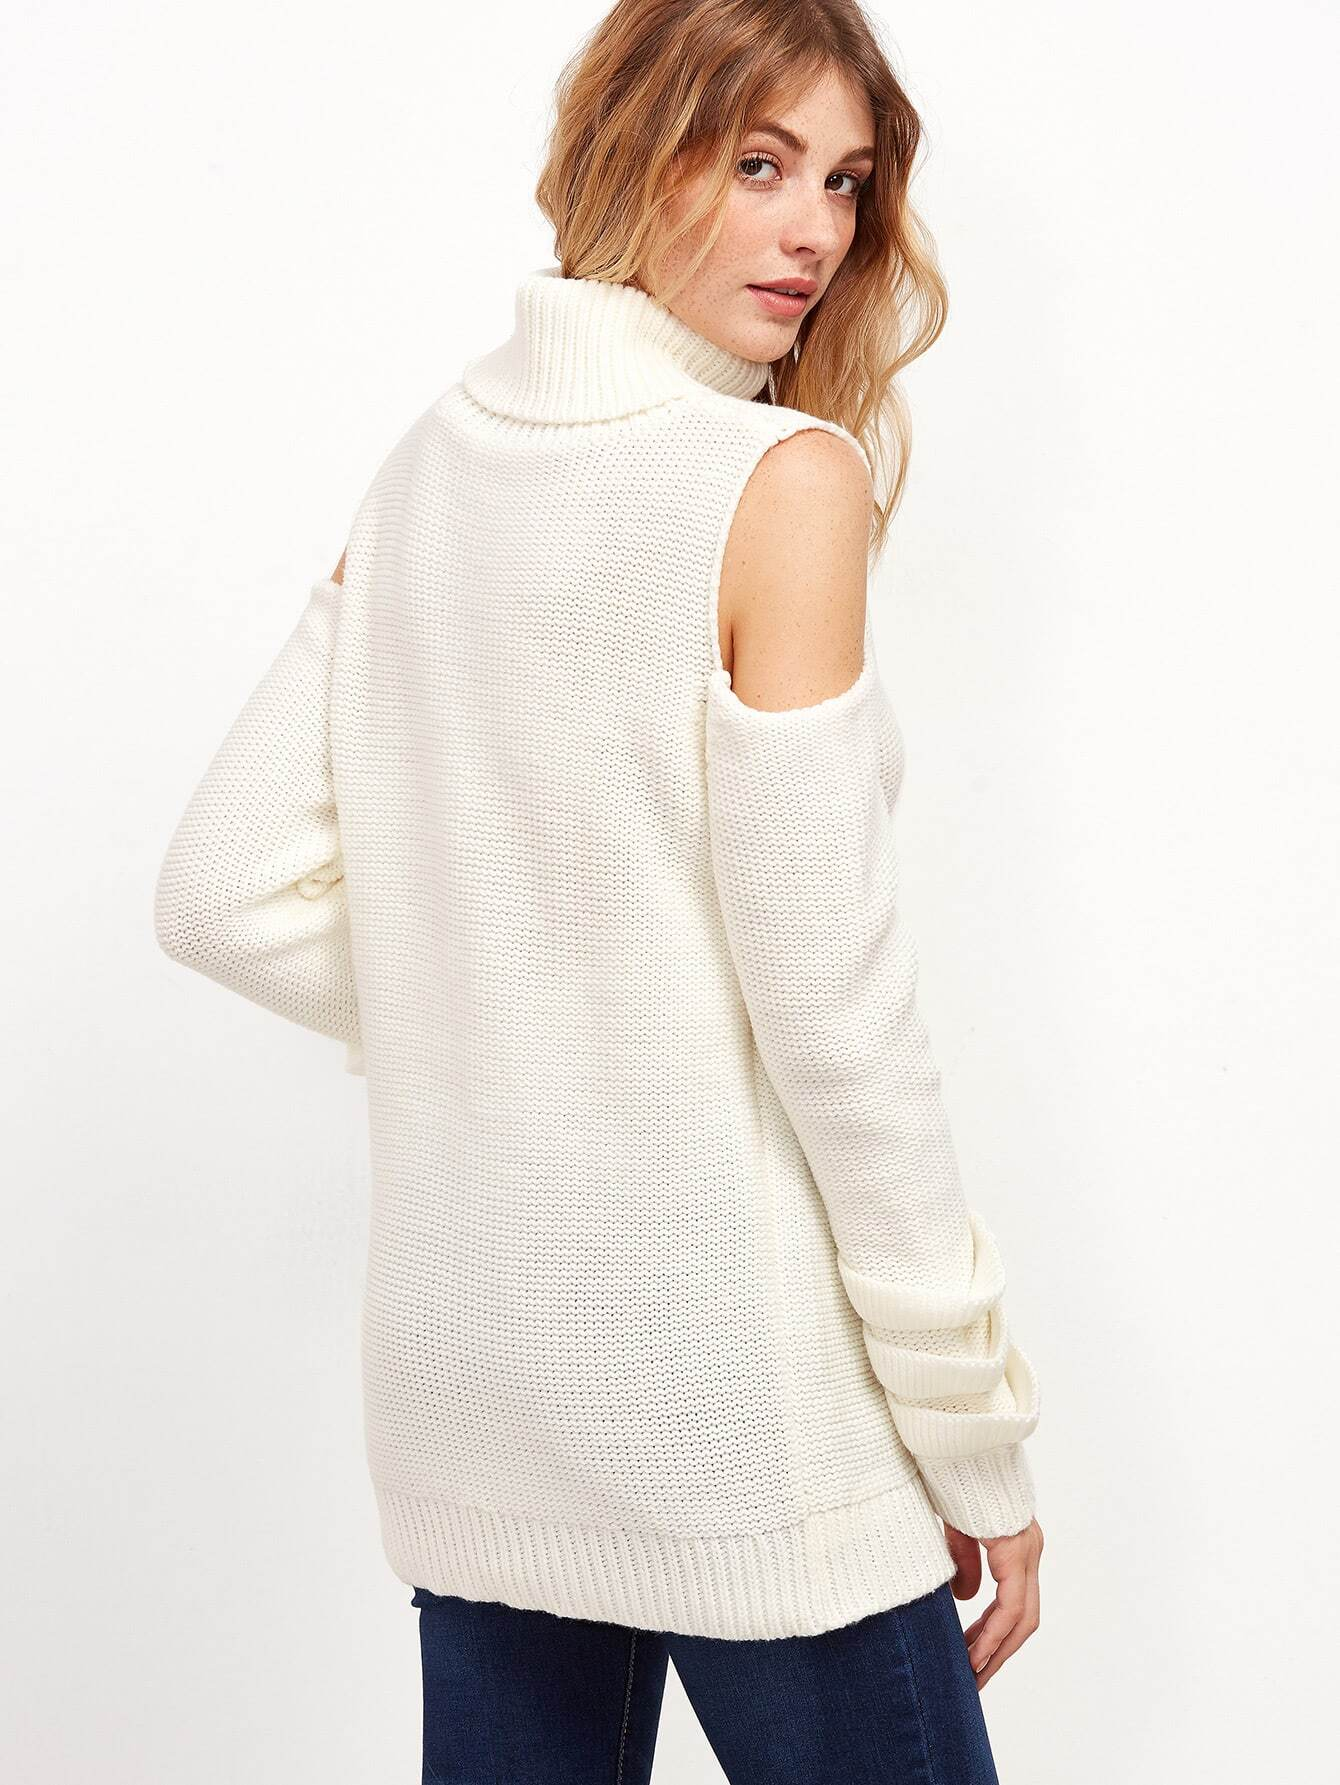 Shopping Open Shoulder Plain Batwing Sleeve Sweaters online with high-quality and best prices Sweaters at Luvyle.